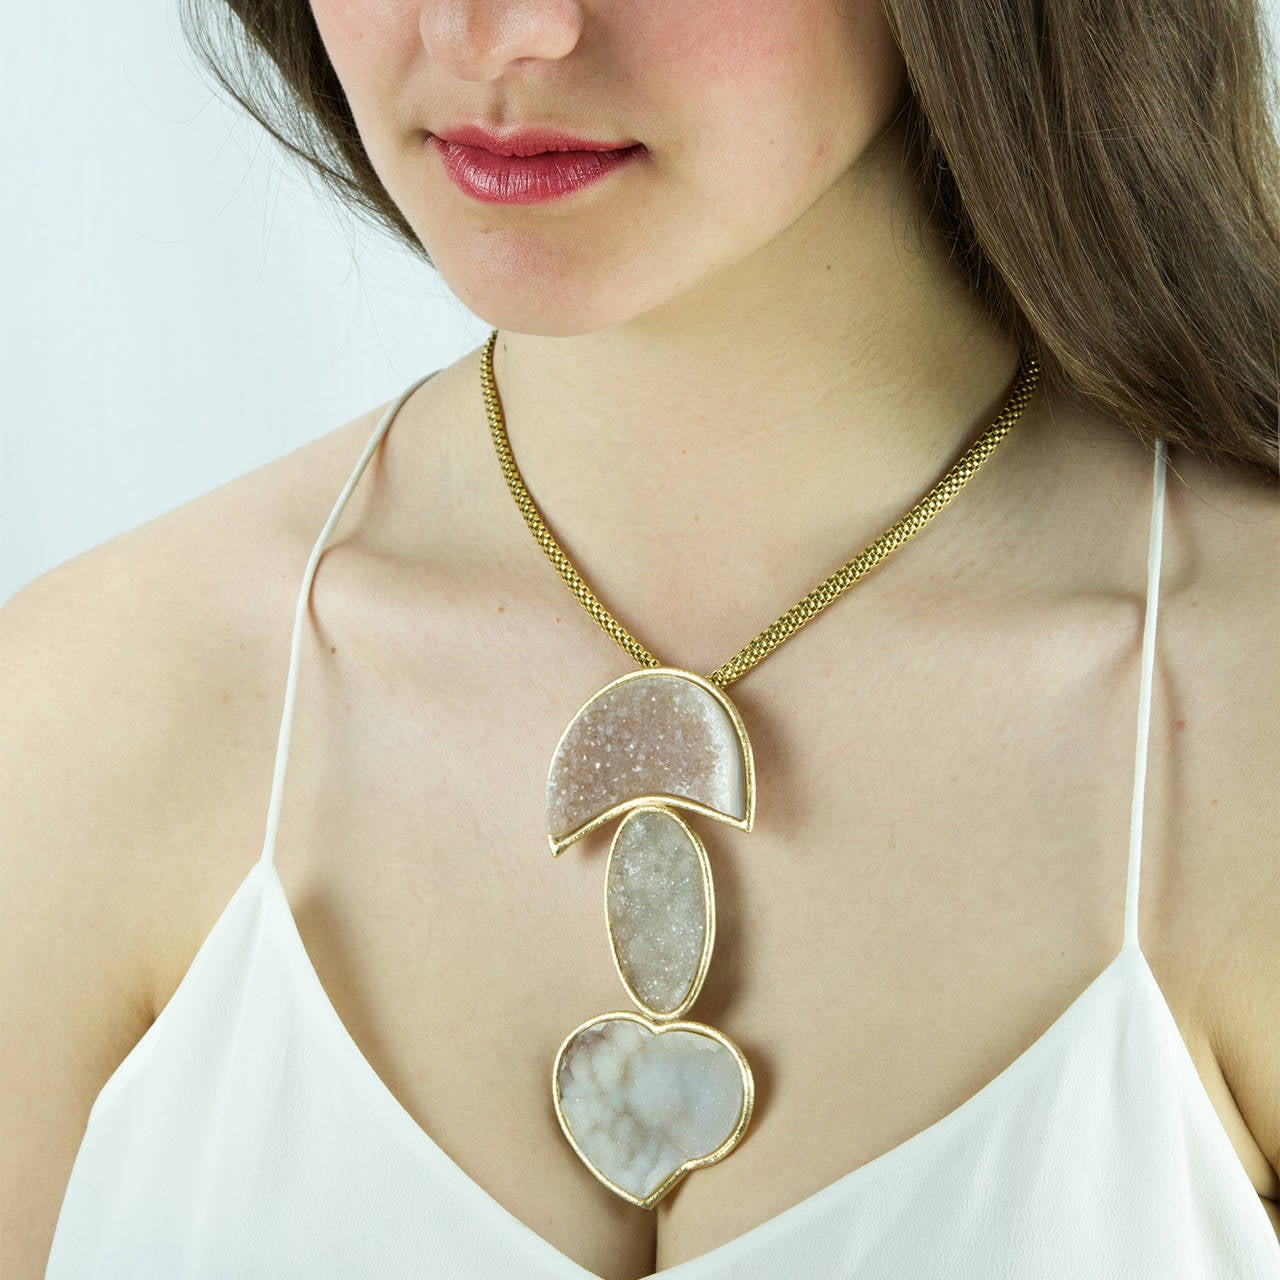 Contemporary Druzy Gold Statement Pendant Necklace with Heart For Sale